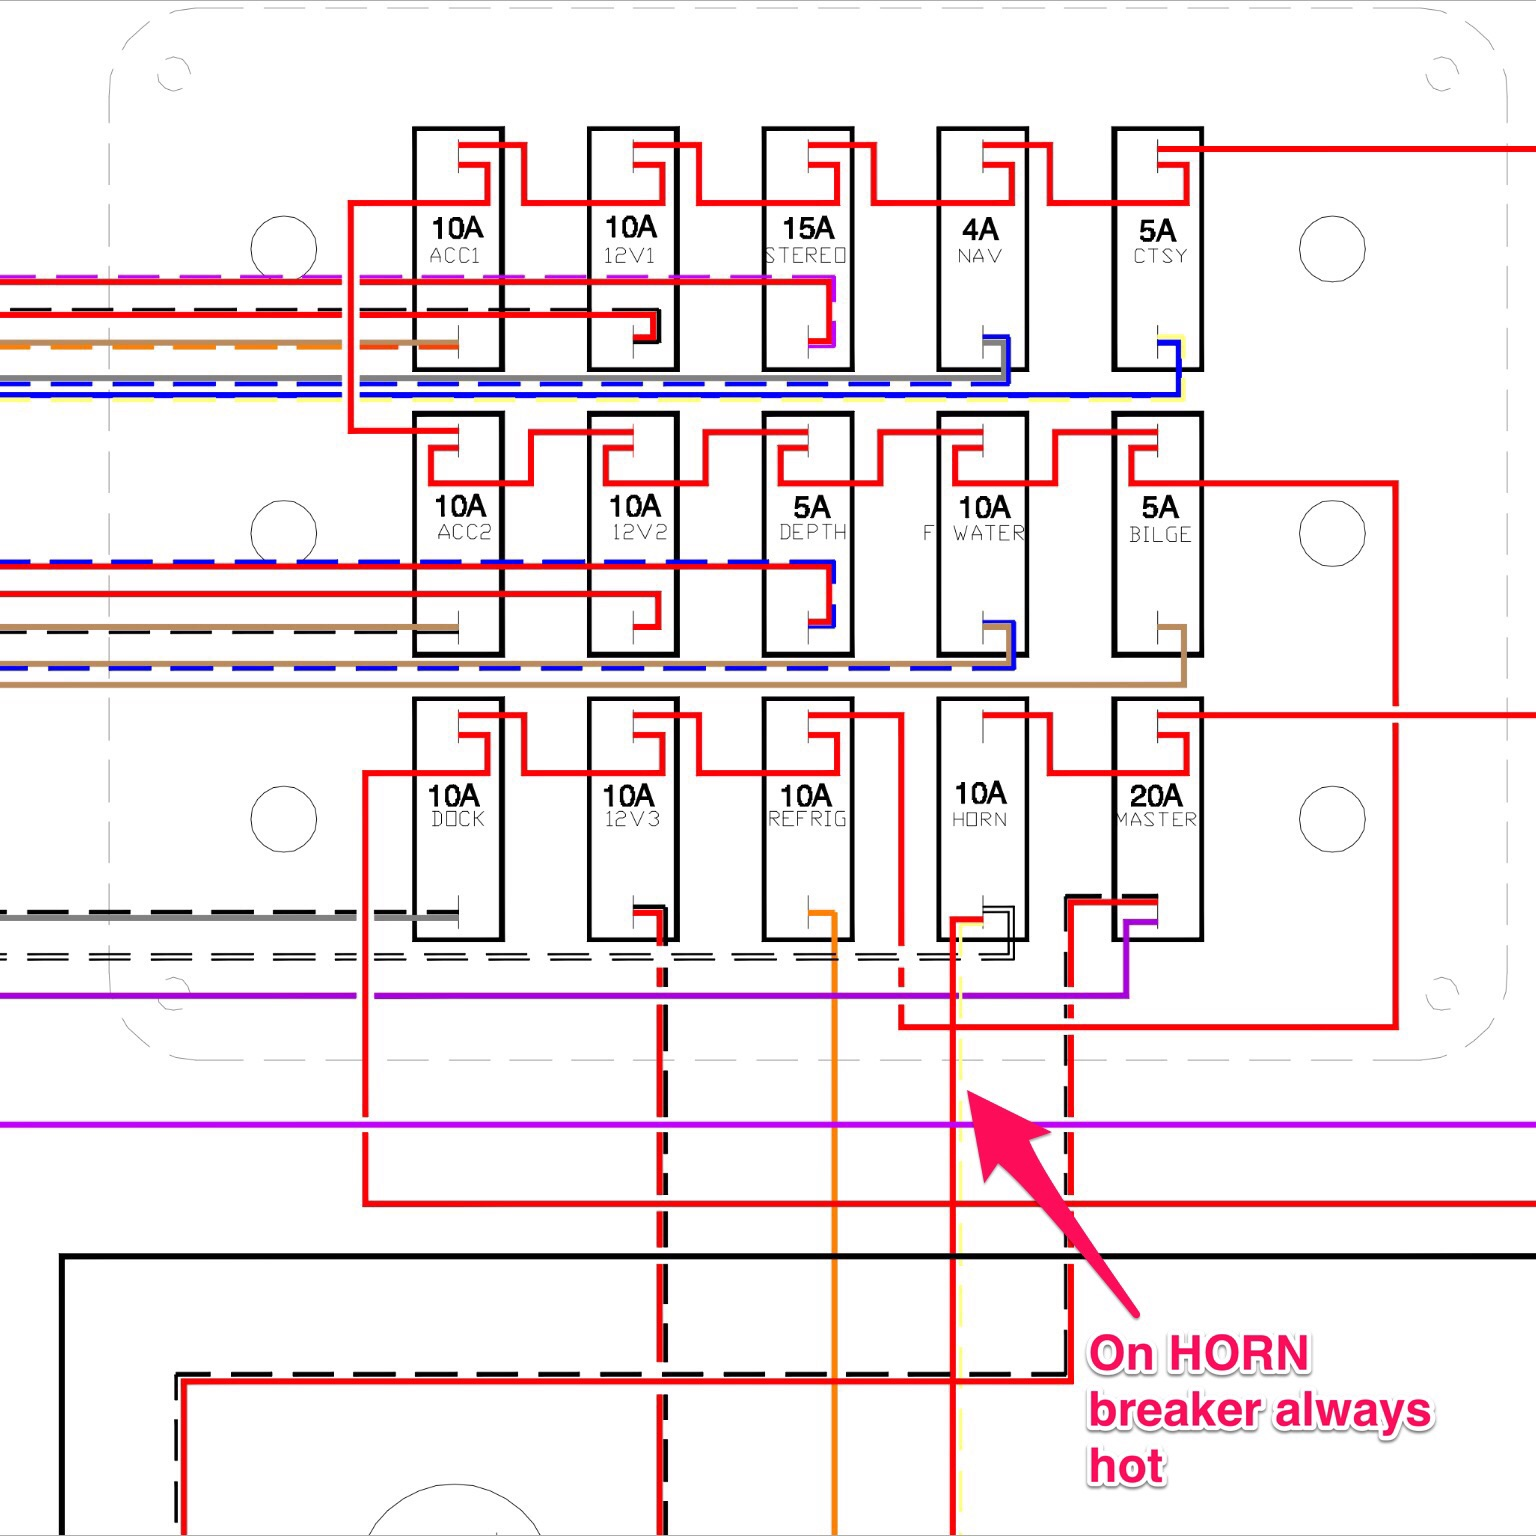 Wiring Diagram For A Kenwood Kdc 610u 37 Images Krc140 Installation Car Audio Receivers Sl1500 Amazon Com Cd Player With Dual Usb Multi Color Source